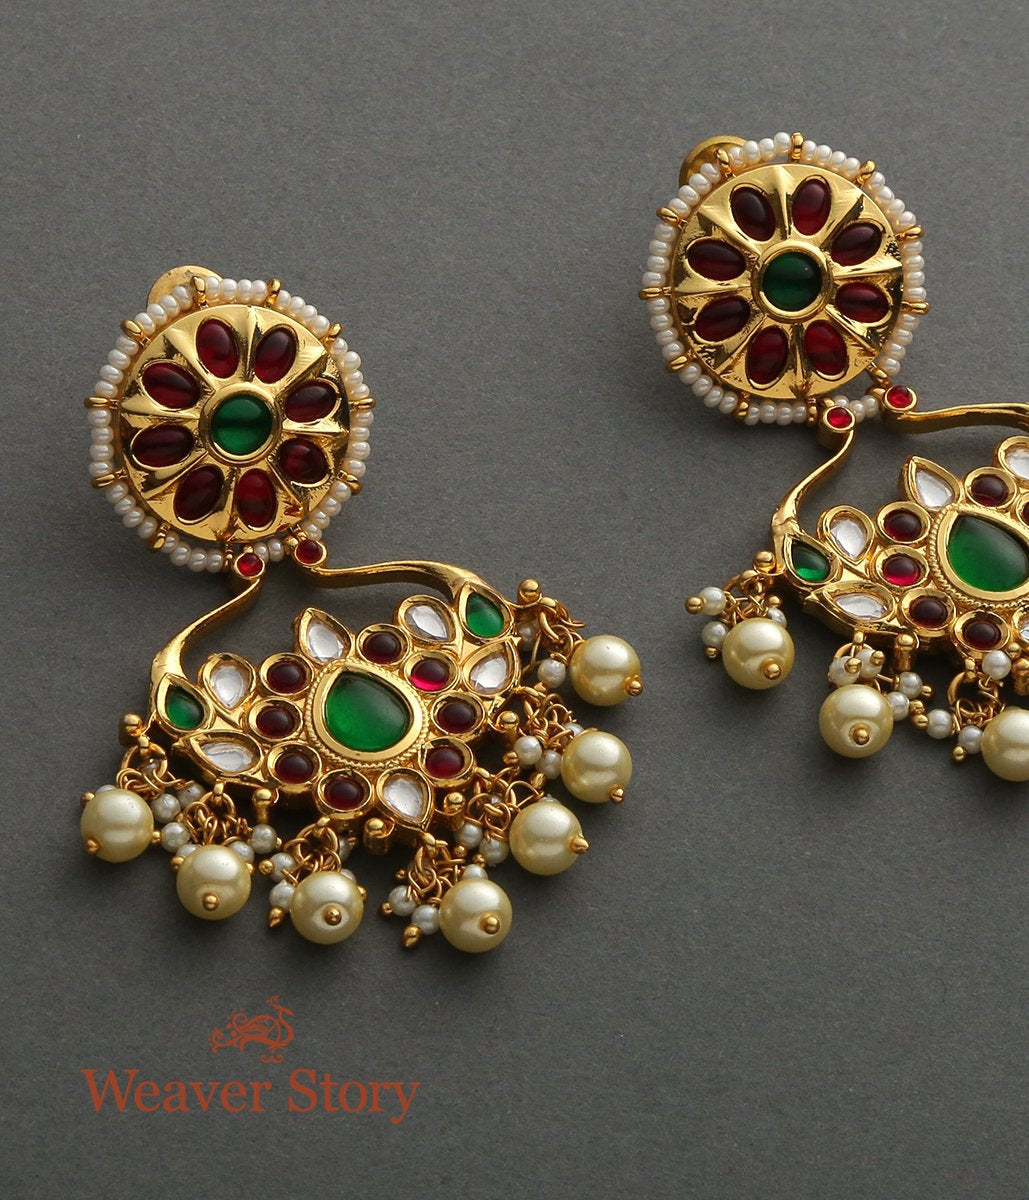 Golden Chandbala Earrings with Green and Red Stones